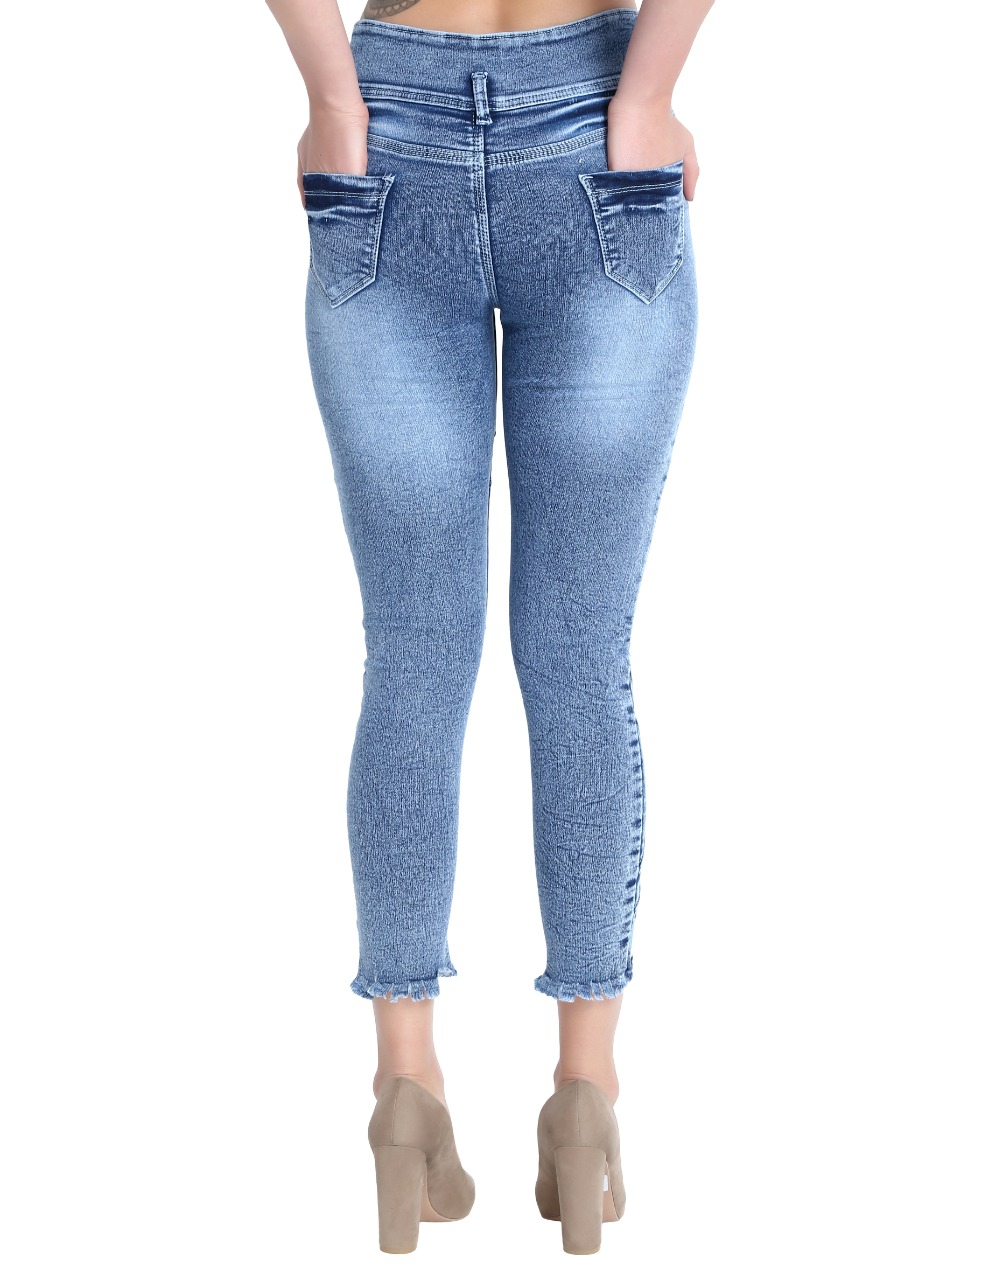 Syann ladies jeans3